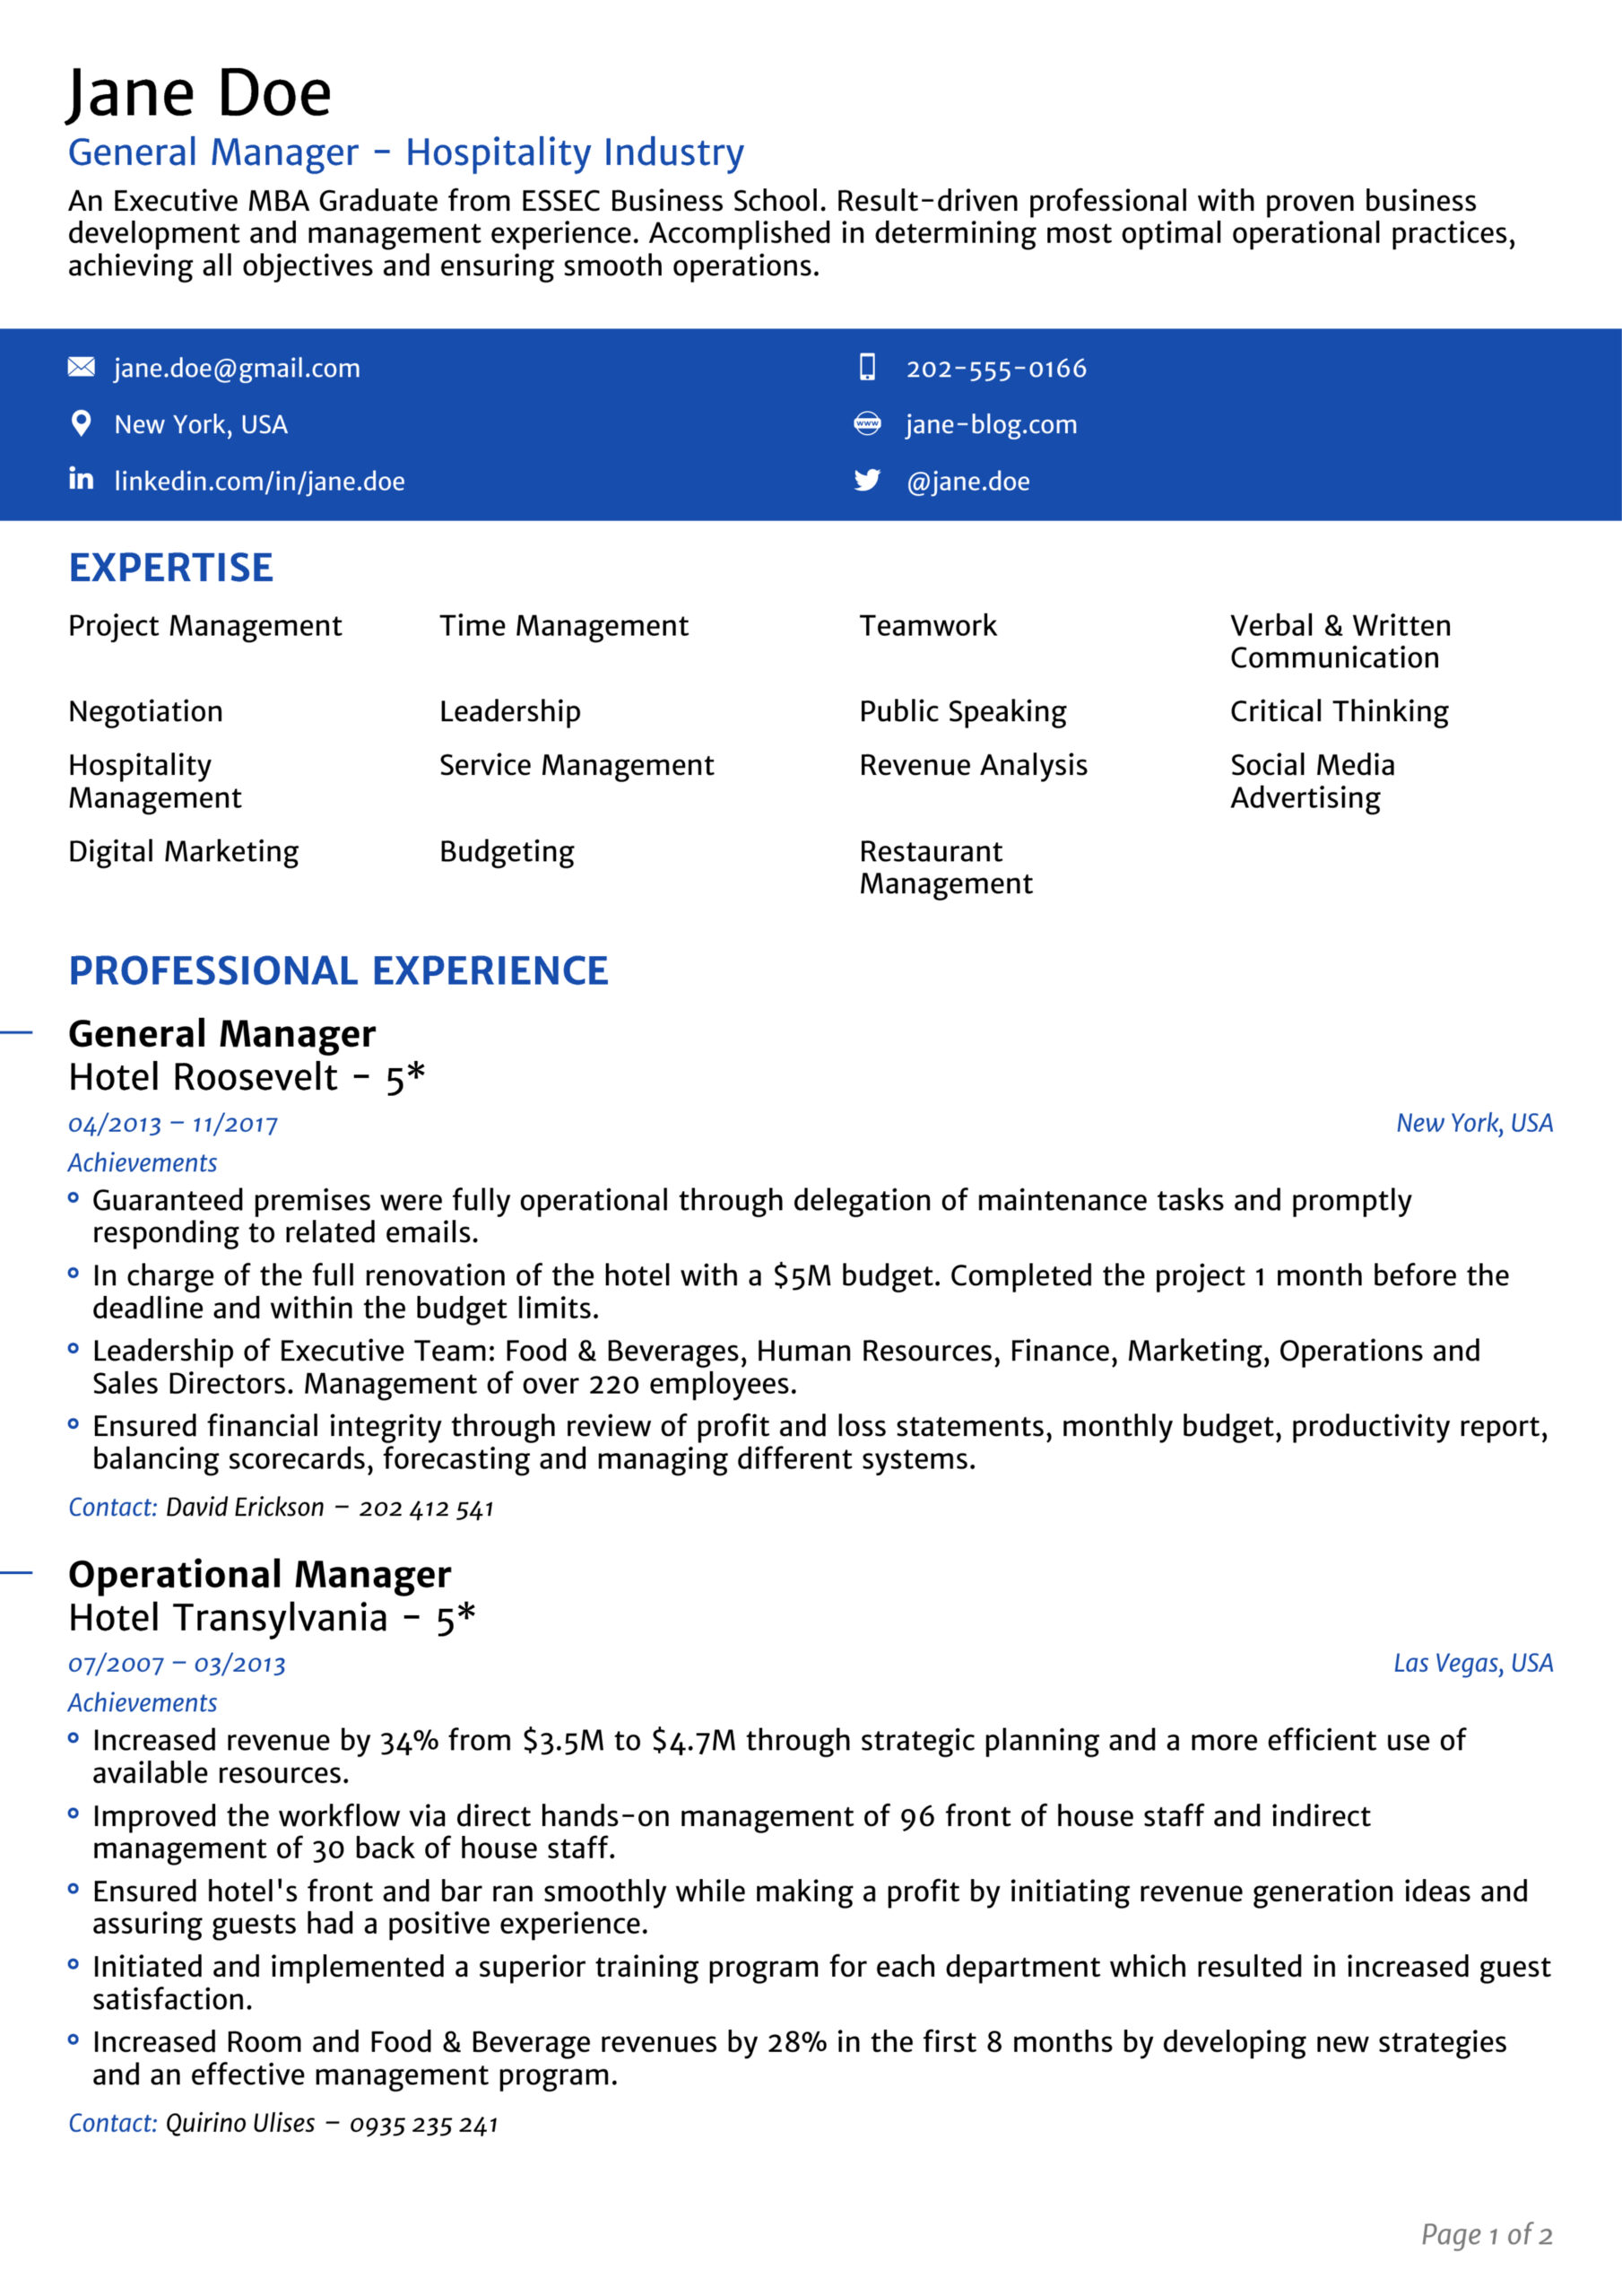 job titles examples for your resume search headline profile title in nurse leader peer Resume Headline For Your Resume Profile